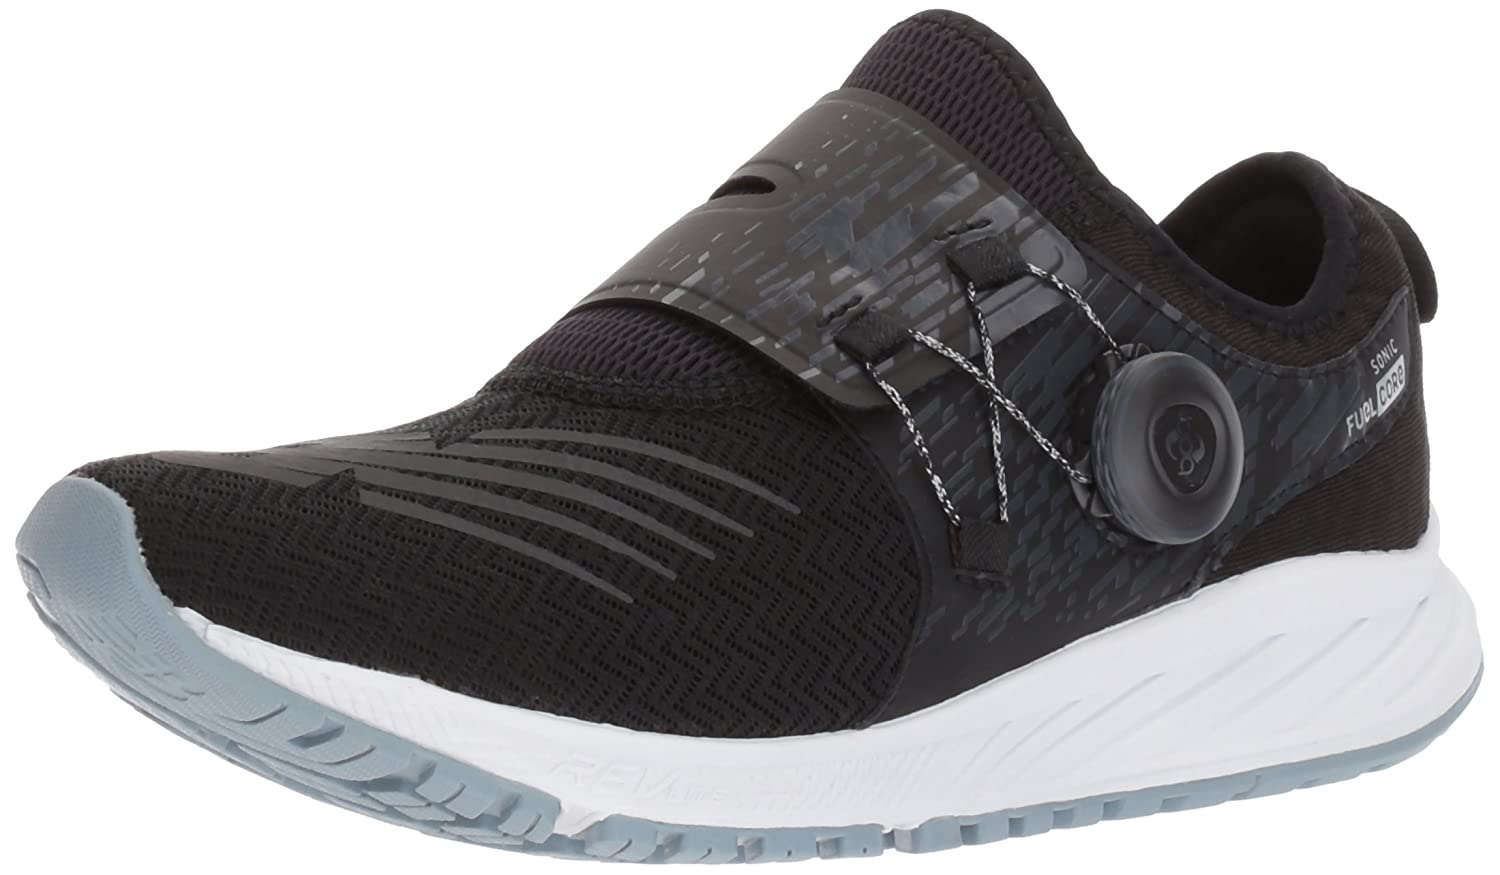 New Balance Women's Sonic V1 Running Shoe B01NBA9L2B 12 B(M) US|Black/Silver